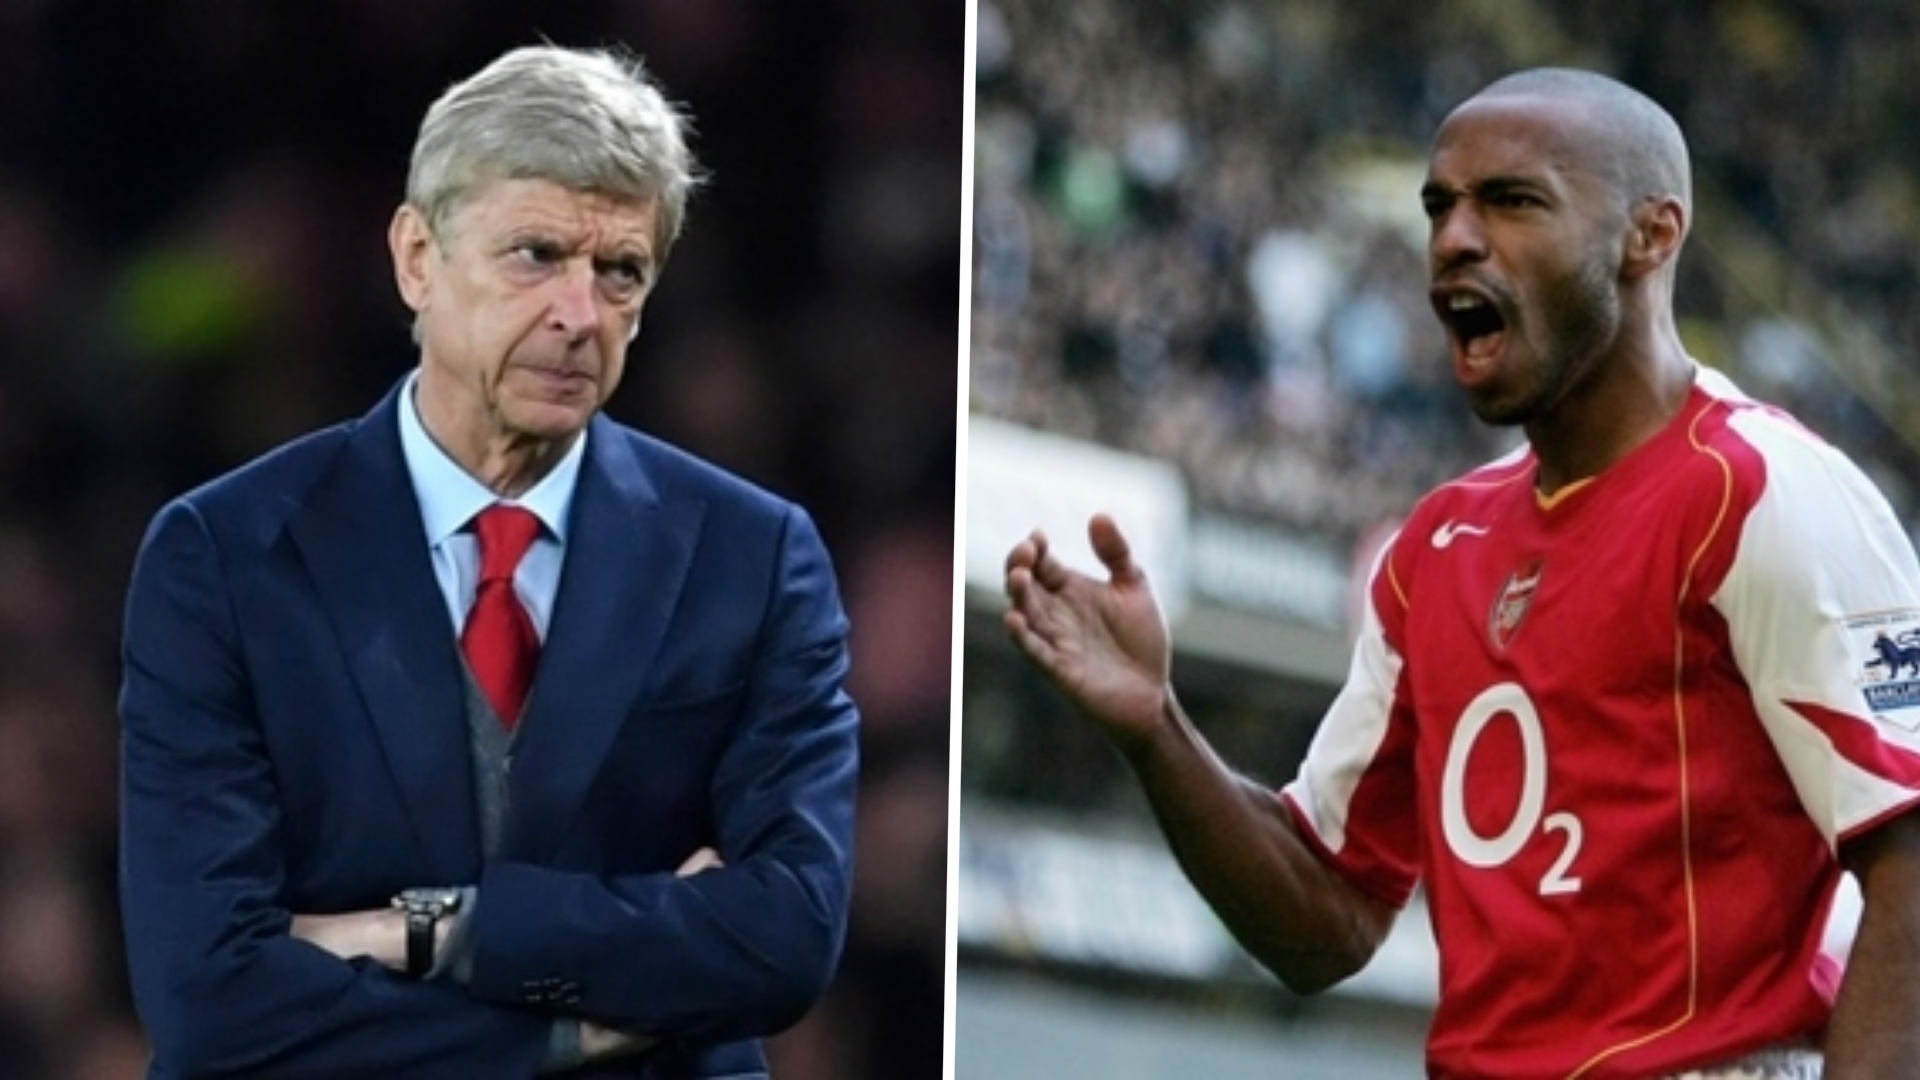 Henry admits to screaming at & arguing with 'father figure' Wenger during iconic Arsenal spell